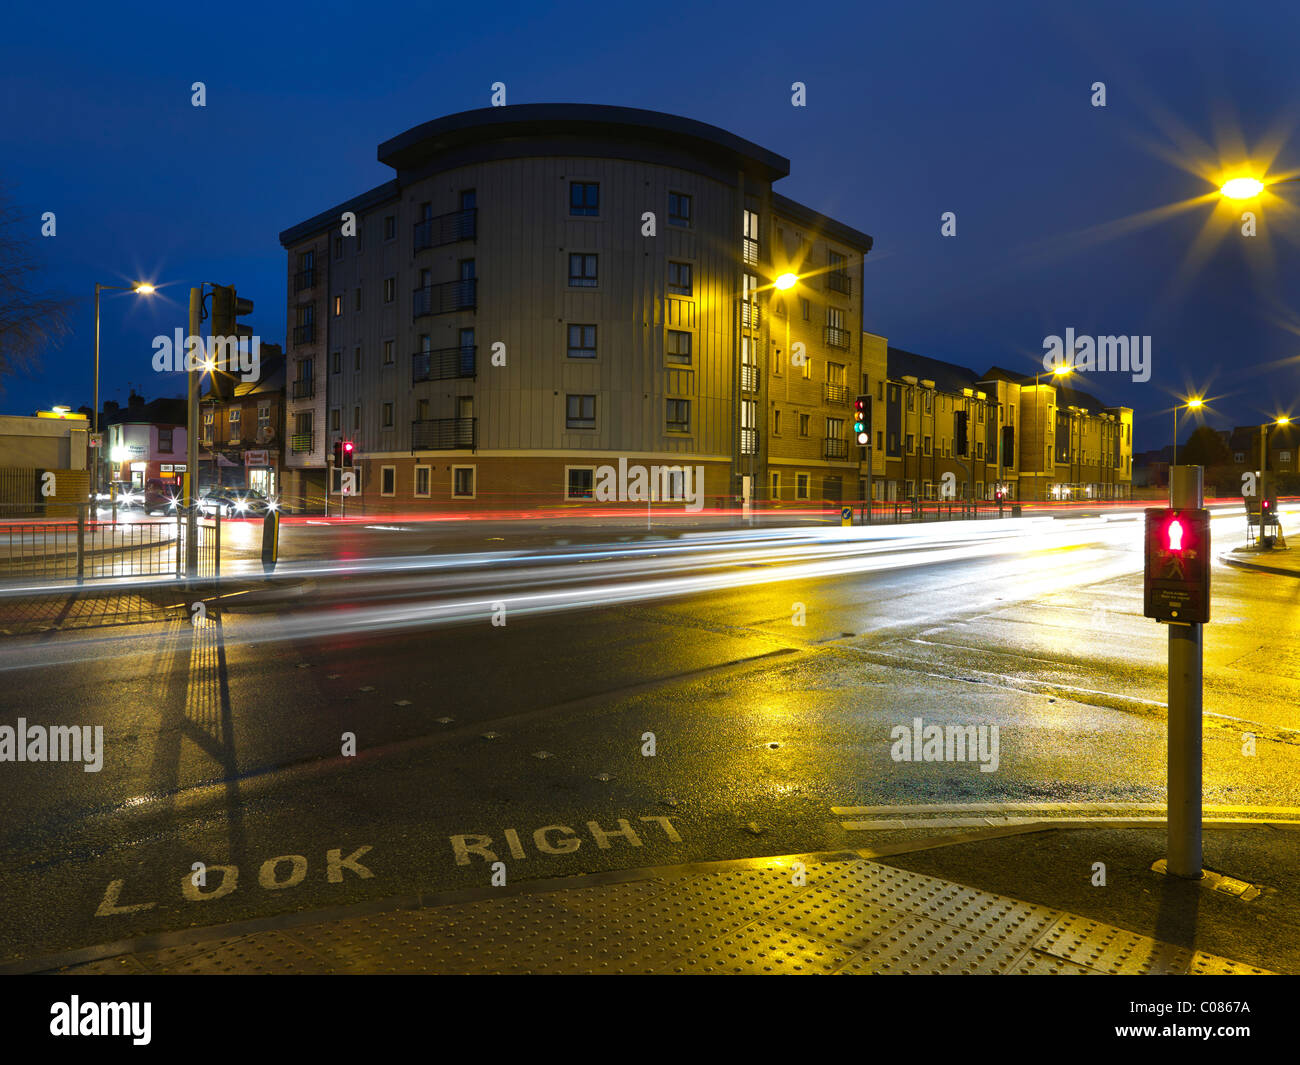 Building at busy road junction at night - Stock Image